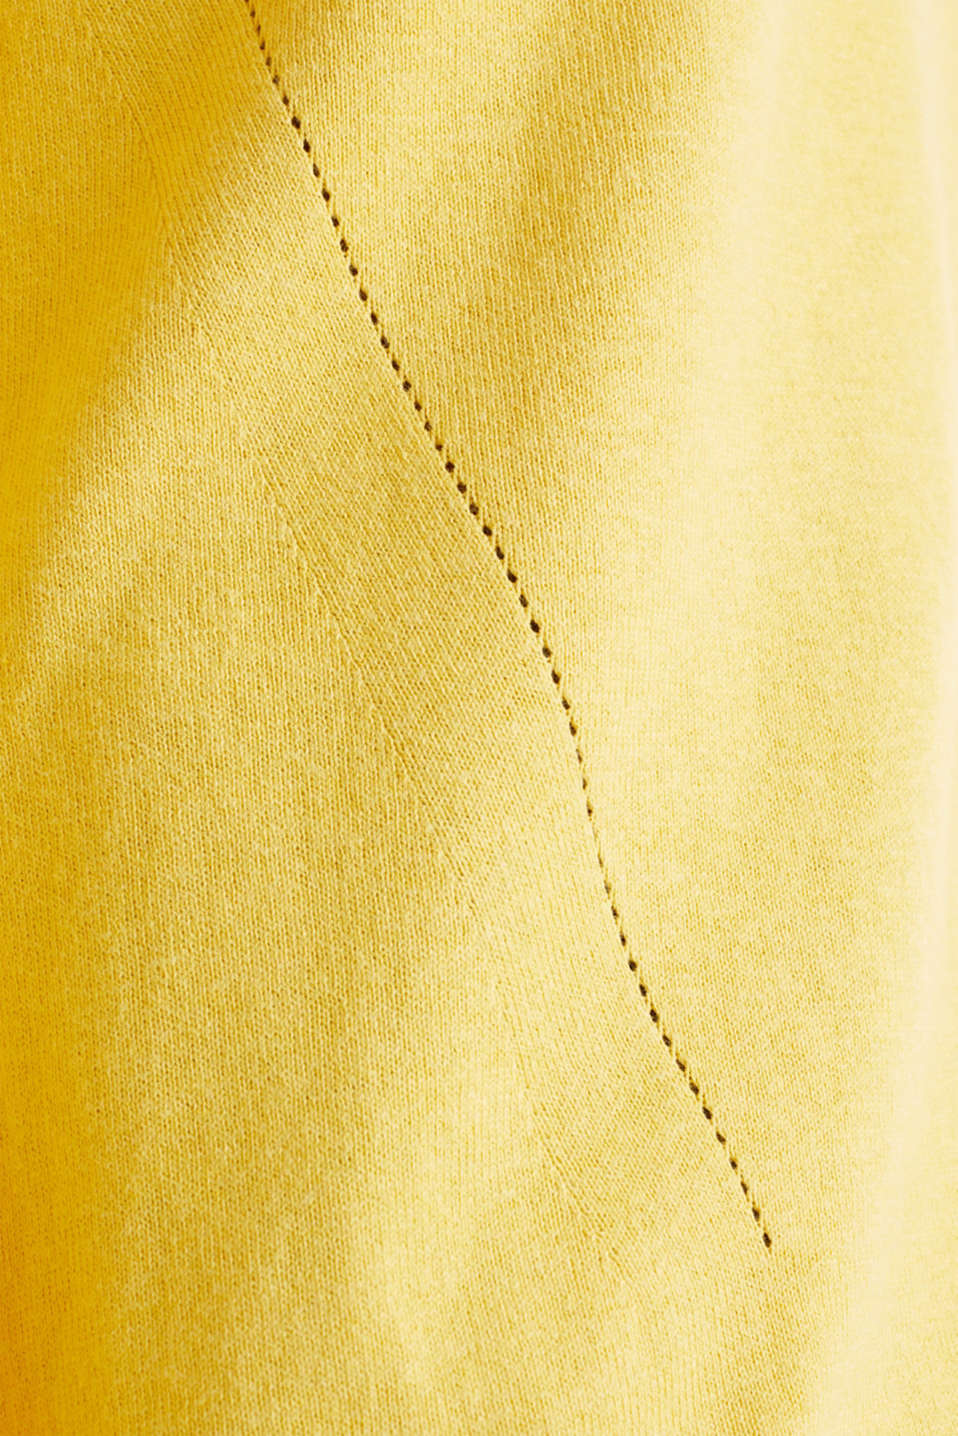 With linen: Jumper with open-work patterned details, YELLOW, detail image number 3